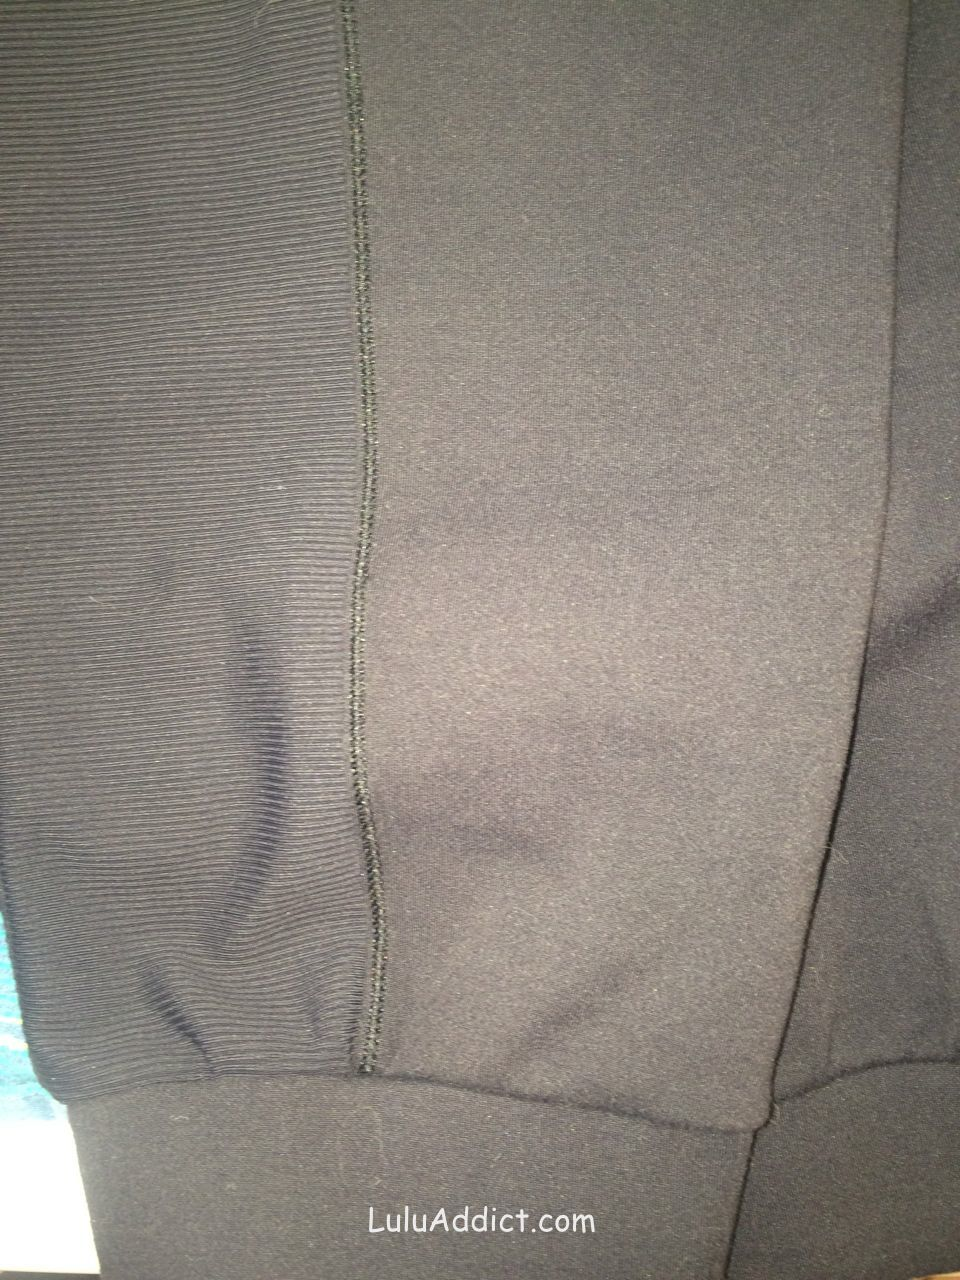 lululemon base runner pant 2013 anke